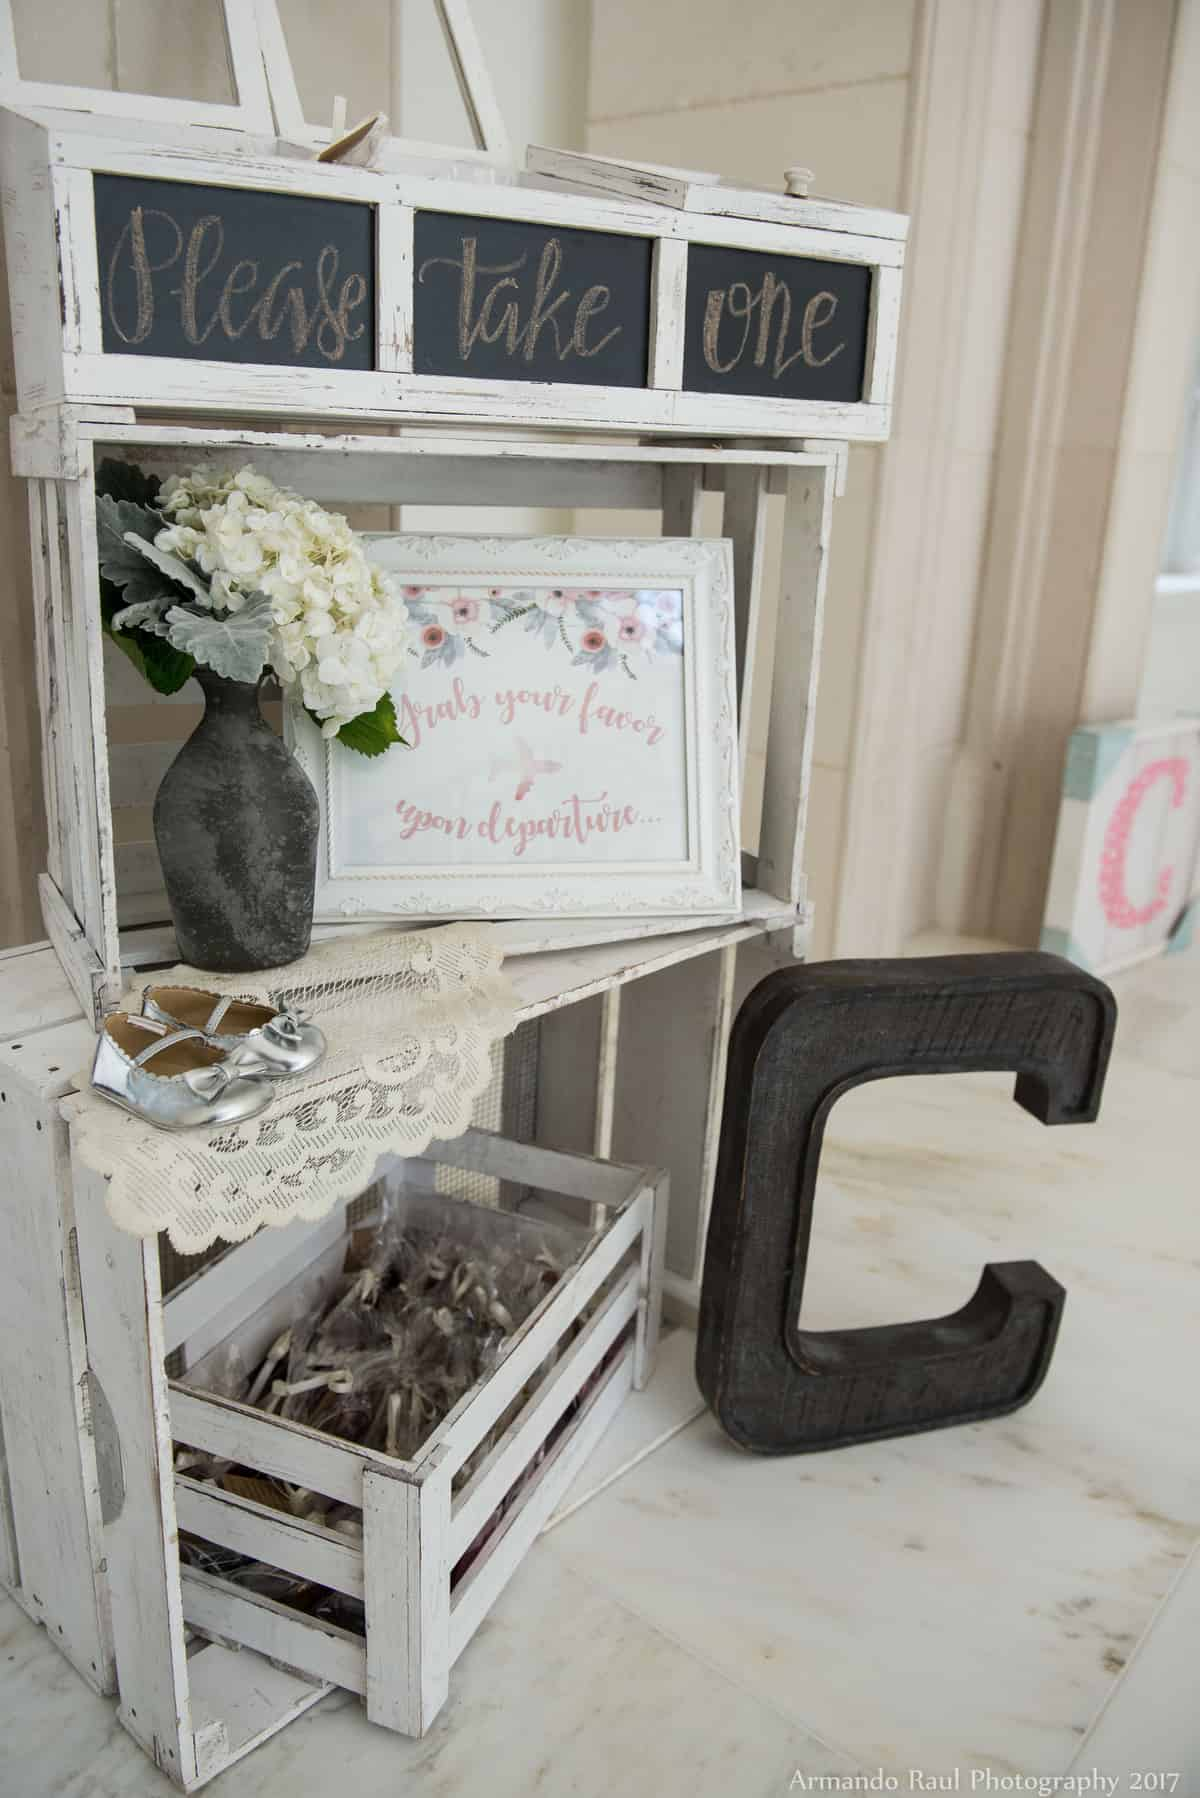 Vintage Travel Theme Baby Shower | Baby Girl | You Are My Greatest Adventure | Lace, World Map, Flowers, Cameras, Vintage Decor | Cake, Sweets, Desserts, Lounge Seating Area, World Cuisine, Food Stations, Seating Arrangement | Home Baby Shower | Blush Pink, Beige, Gold, Champagne, White